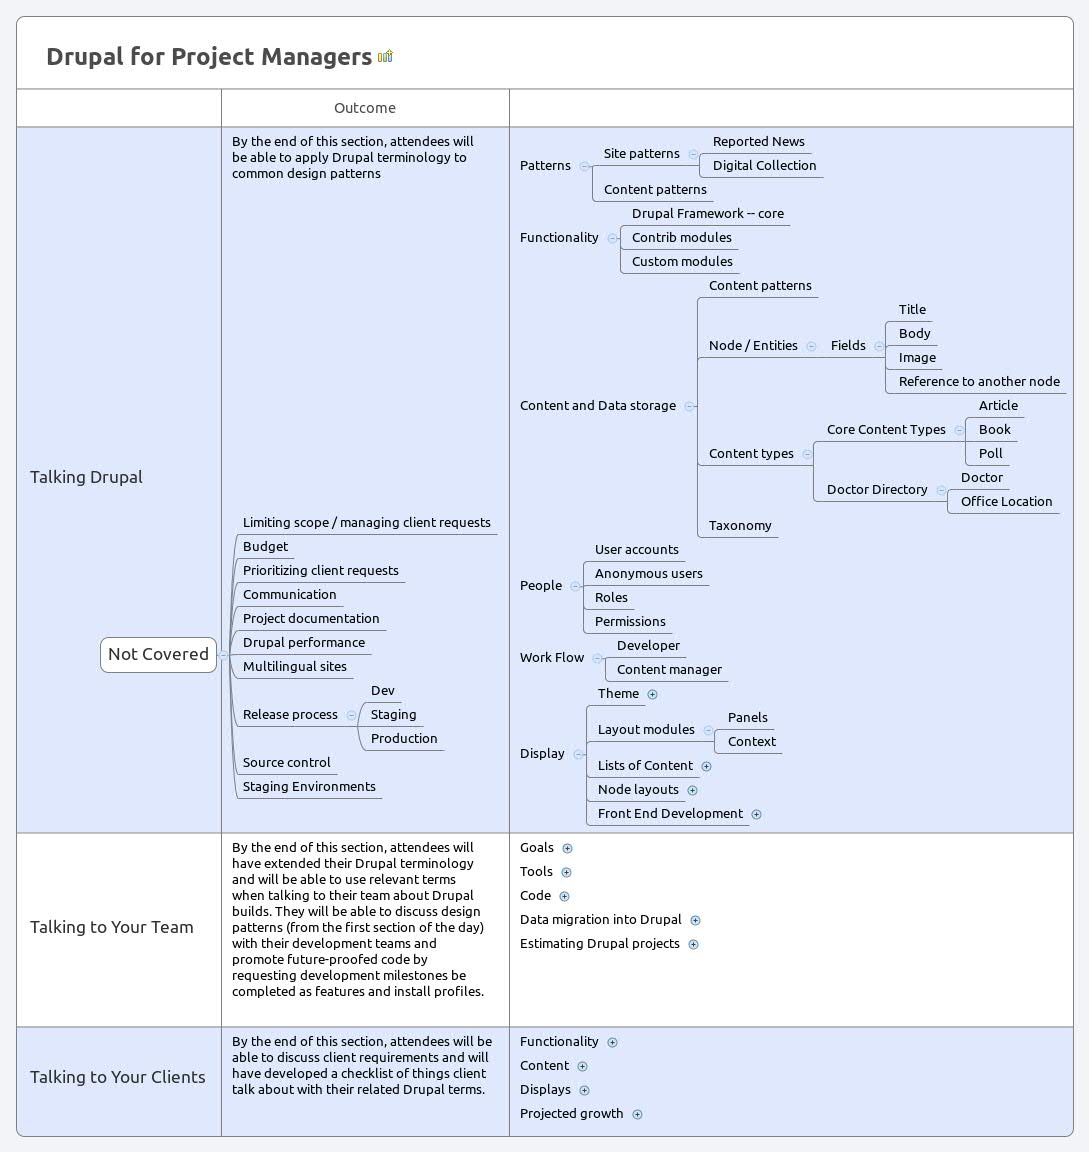 Drupal for Project Managers - XMind - Mind Mapping Software